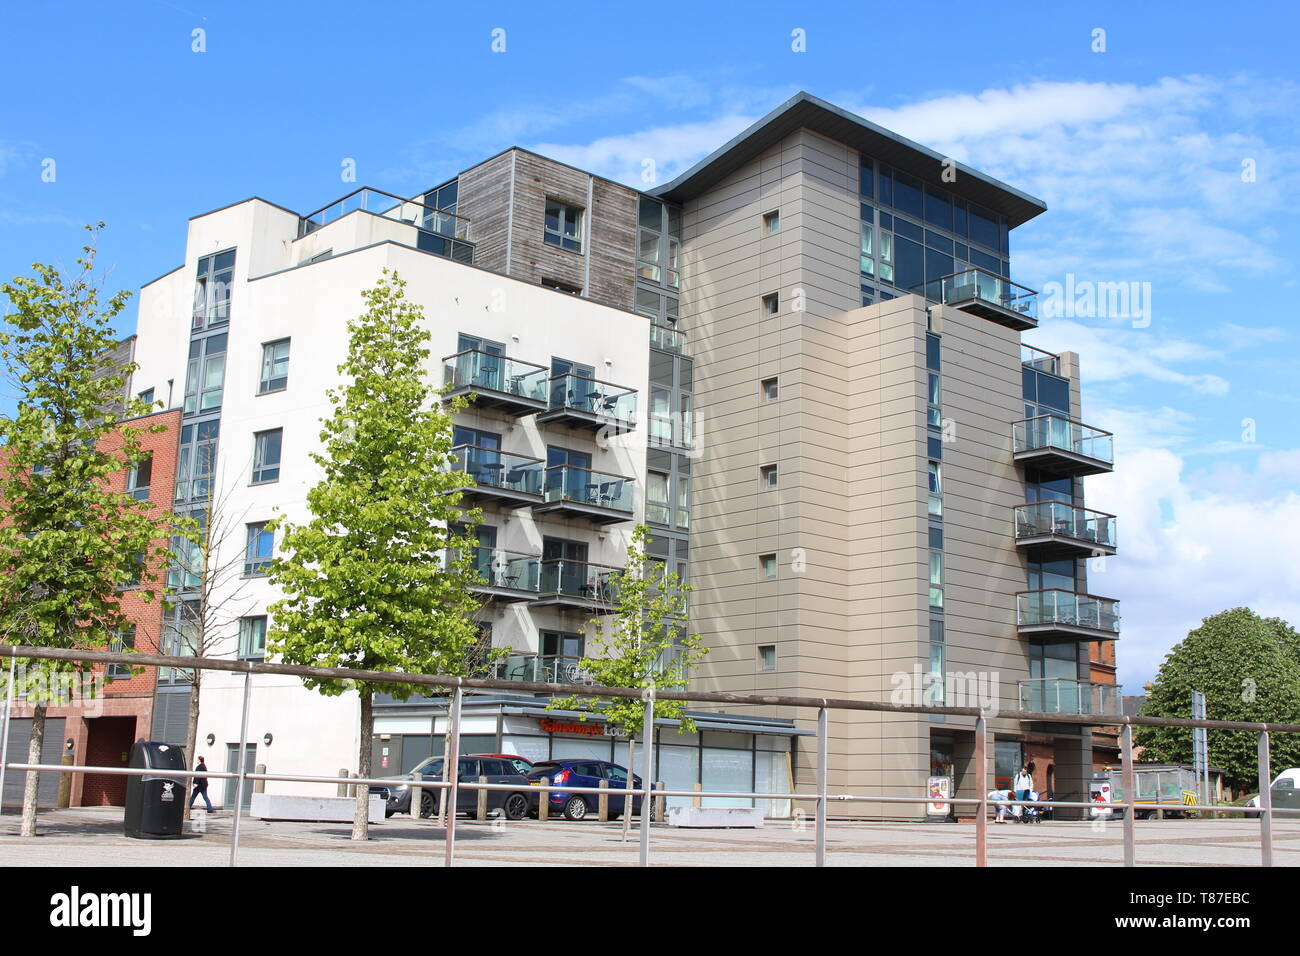 10 May 2019: Cardiff Bay, Cardiff UK:  A block of flats in Cardiff Bay with cladding.  Urban living concept. Stock Photo